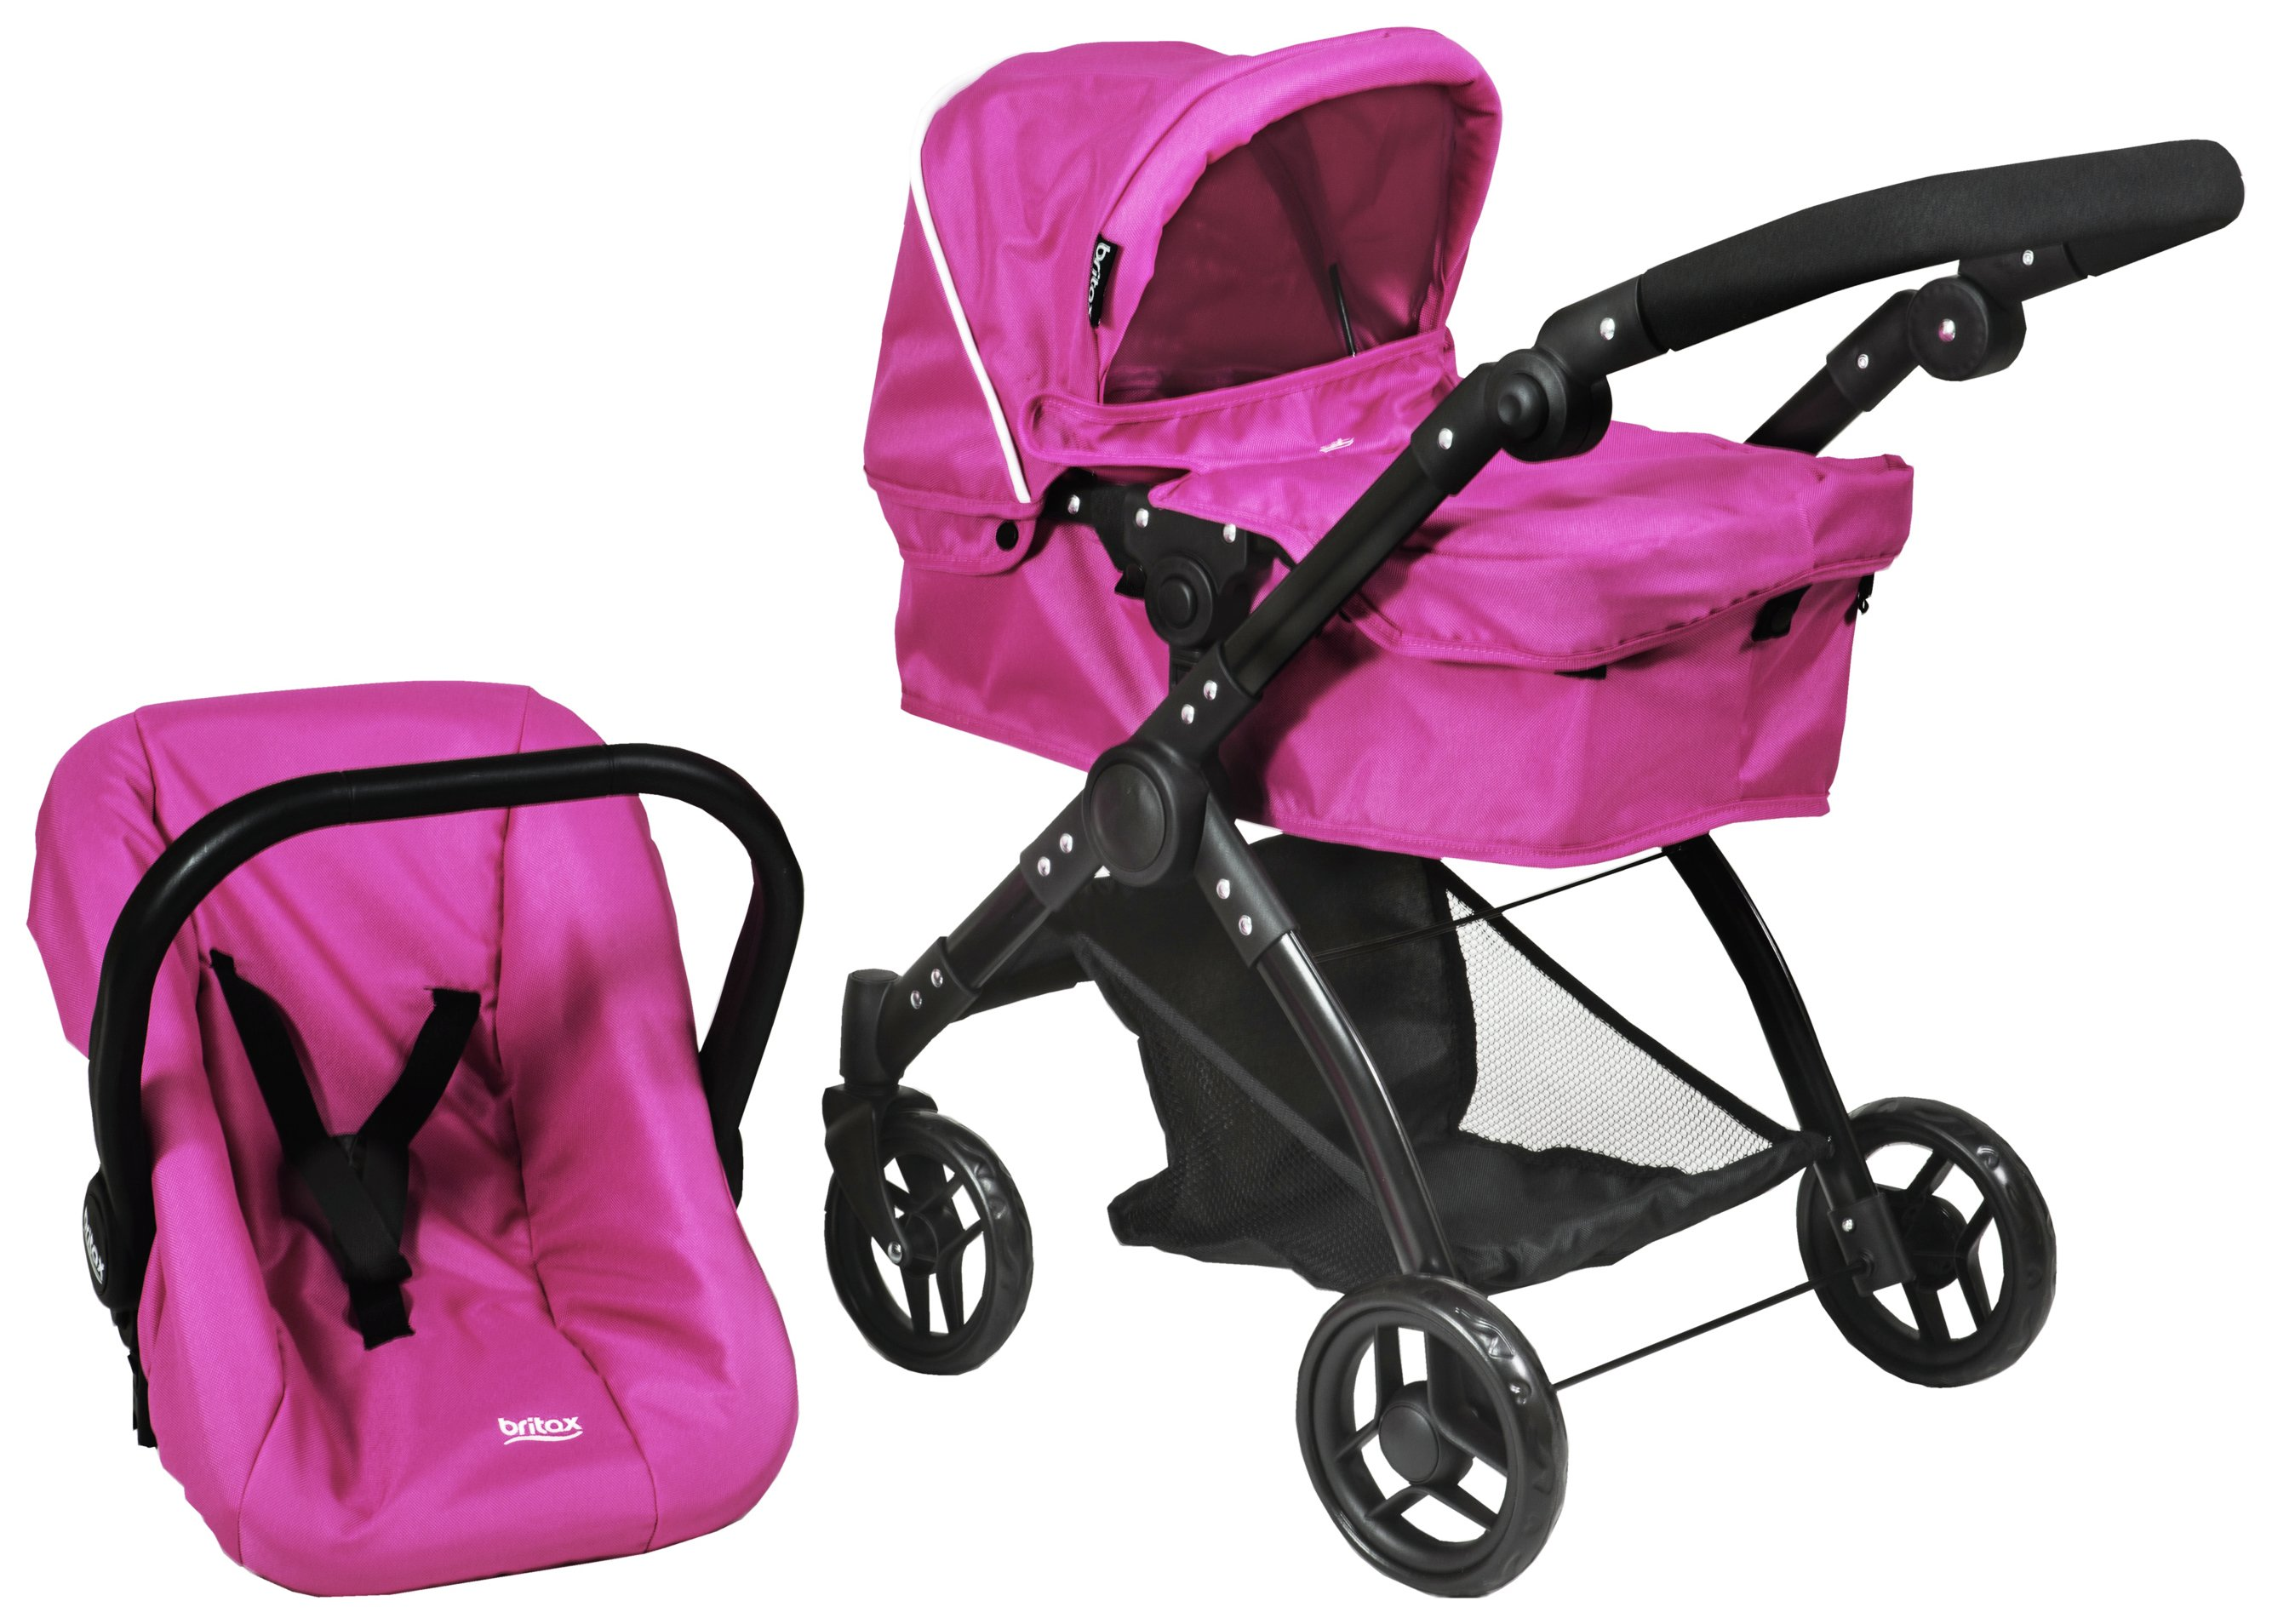 3 Wheel Prams Argos Britax Smile 3 In 1 Dolls Stroller Hot Pink